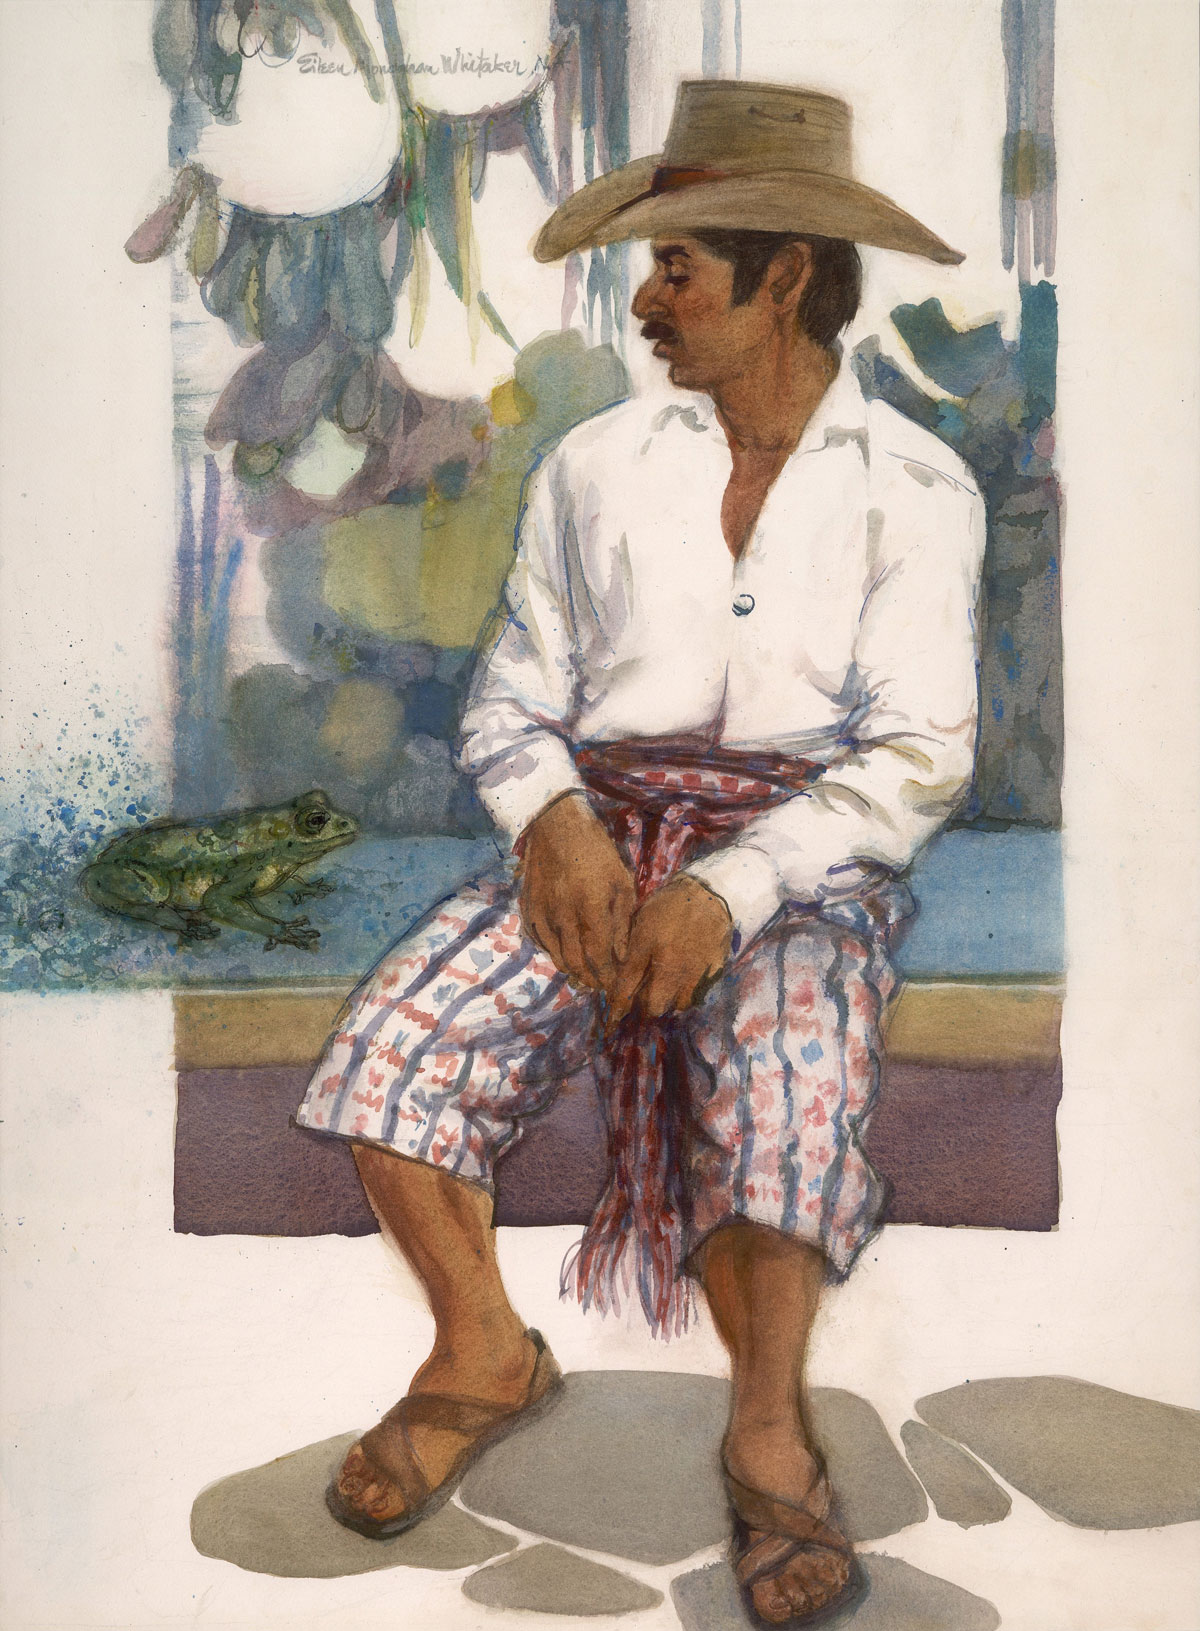 """Que Rana Tan Grande"" 1990 © Eileen Monaghan Whitaker N.A.  22x30 inches Watercolor"